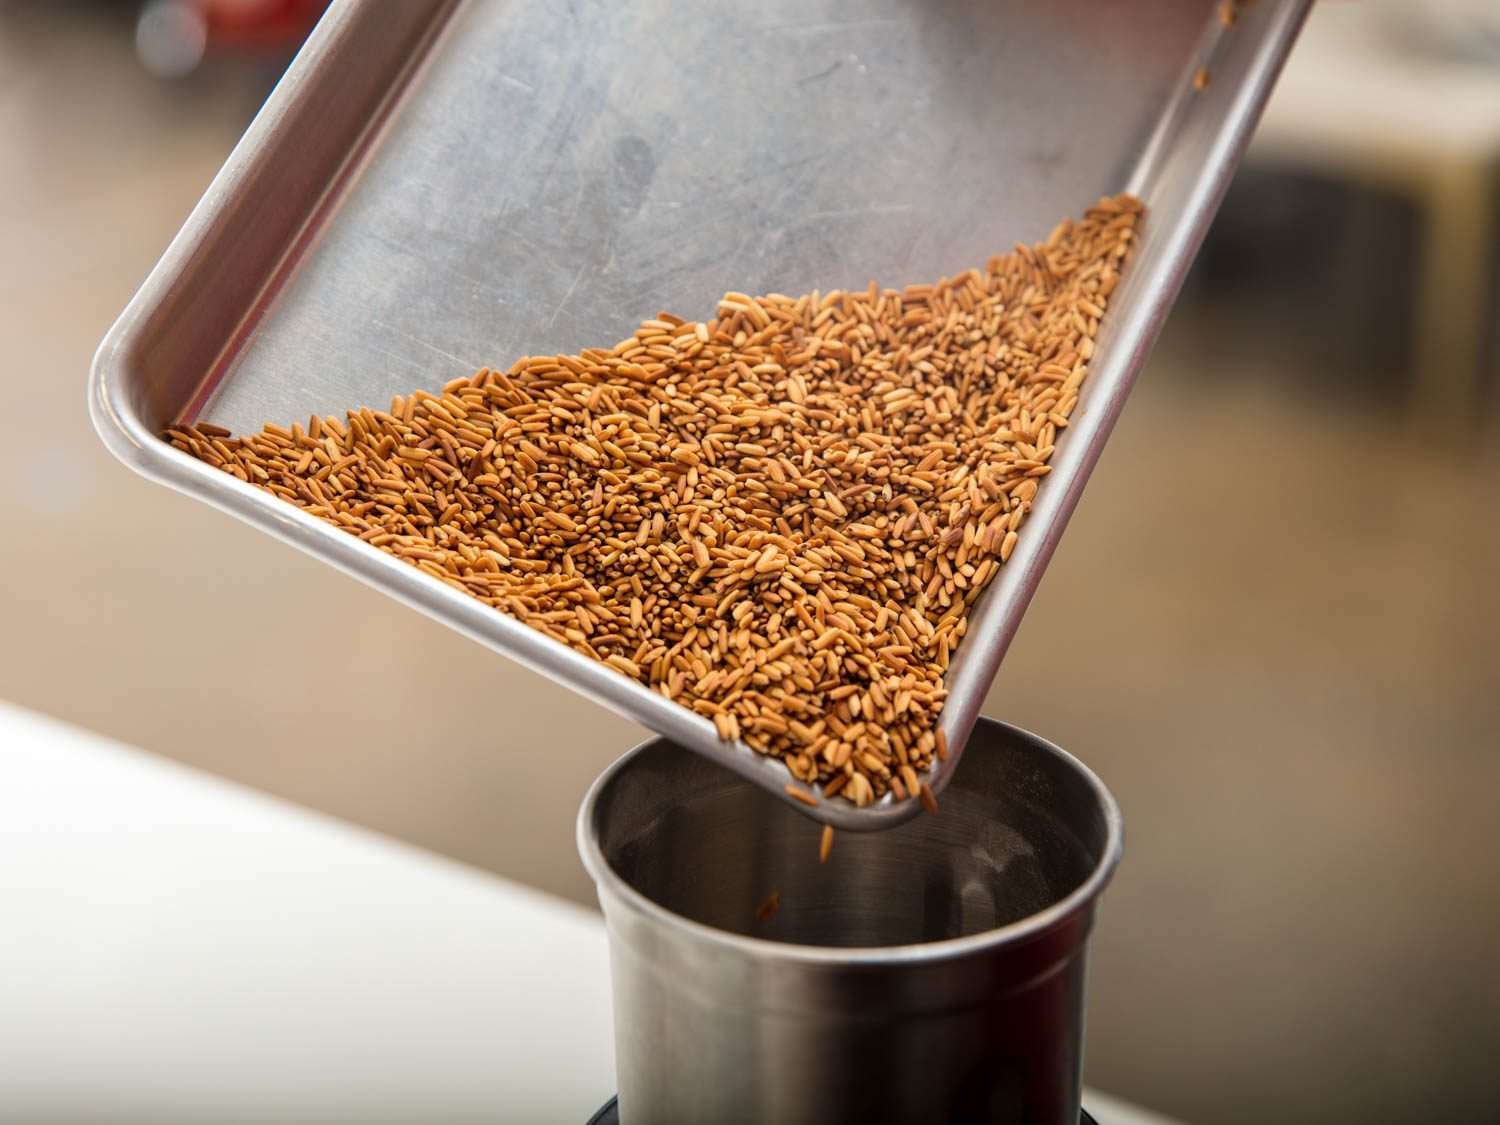 Transferring toasted rice to a spice grinder.